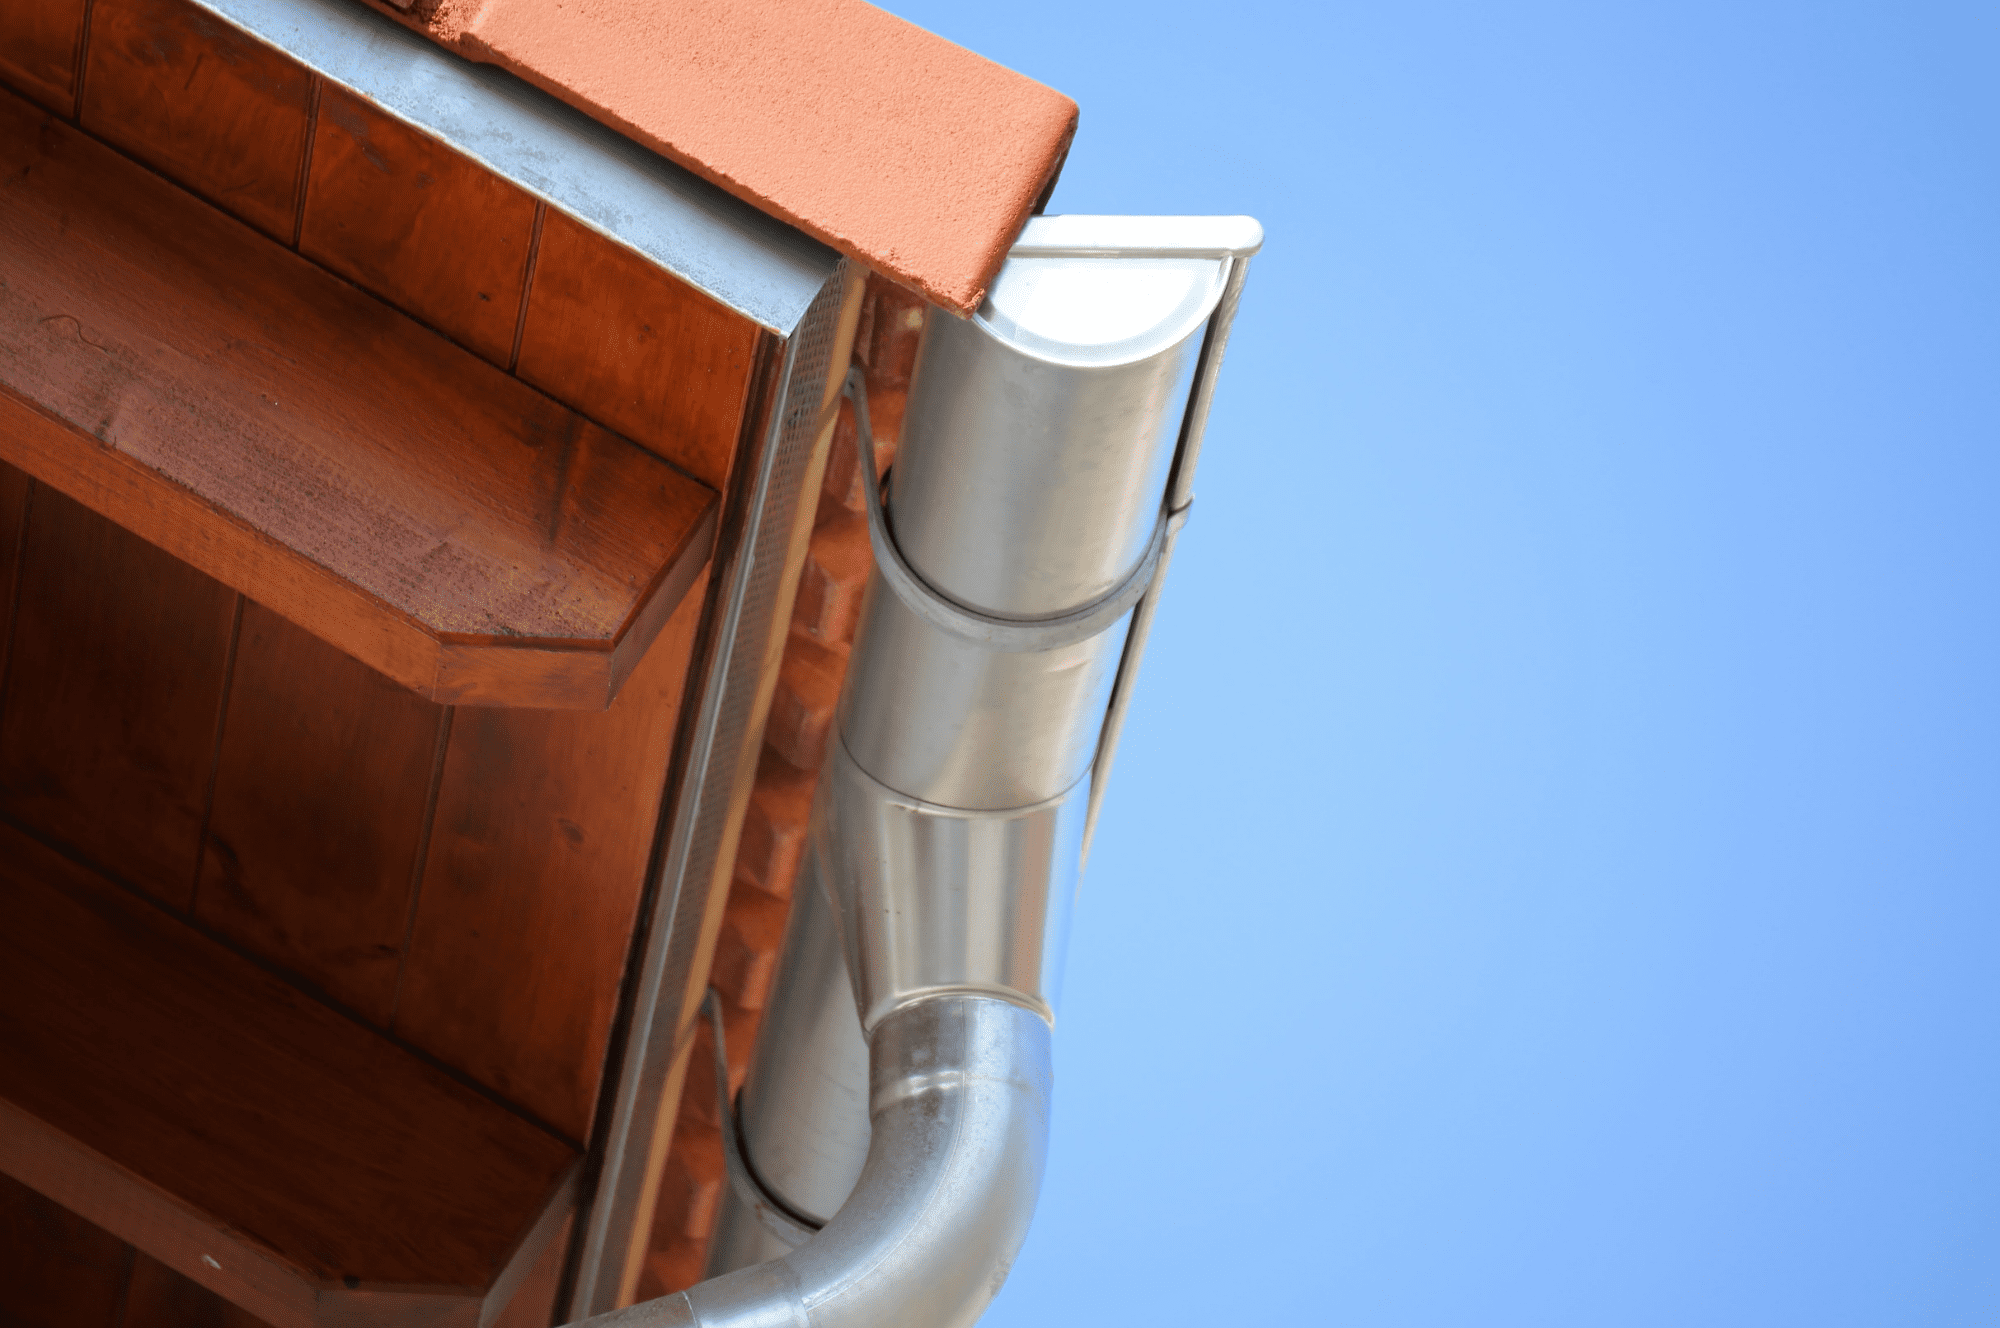 close-up shot of roof eaves and gutter